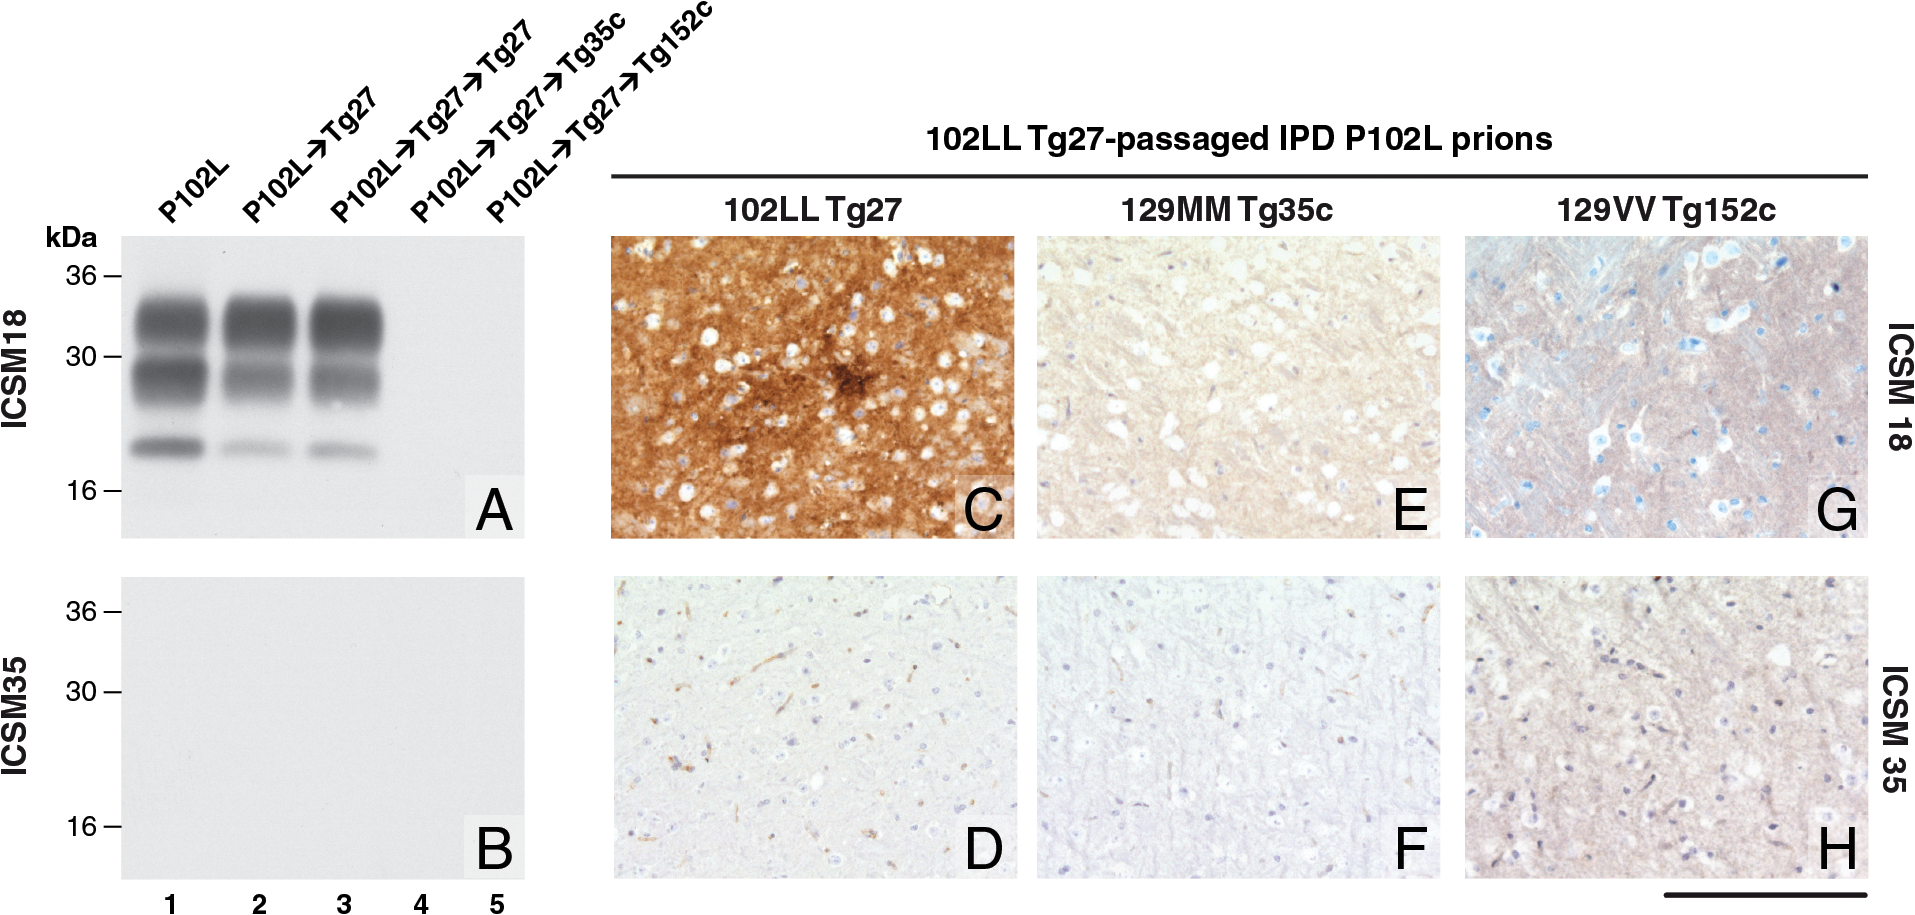 Detection of disease-related PrP by immunohistochemistry and immunoblotting in brains of transgenic mice inoculated with GSS-102L prions.